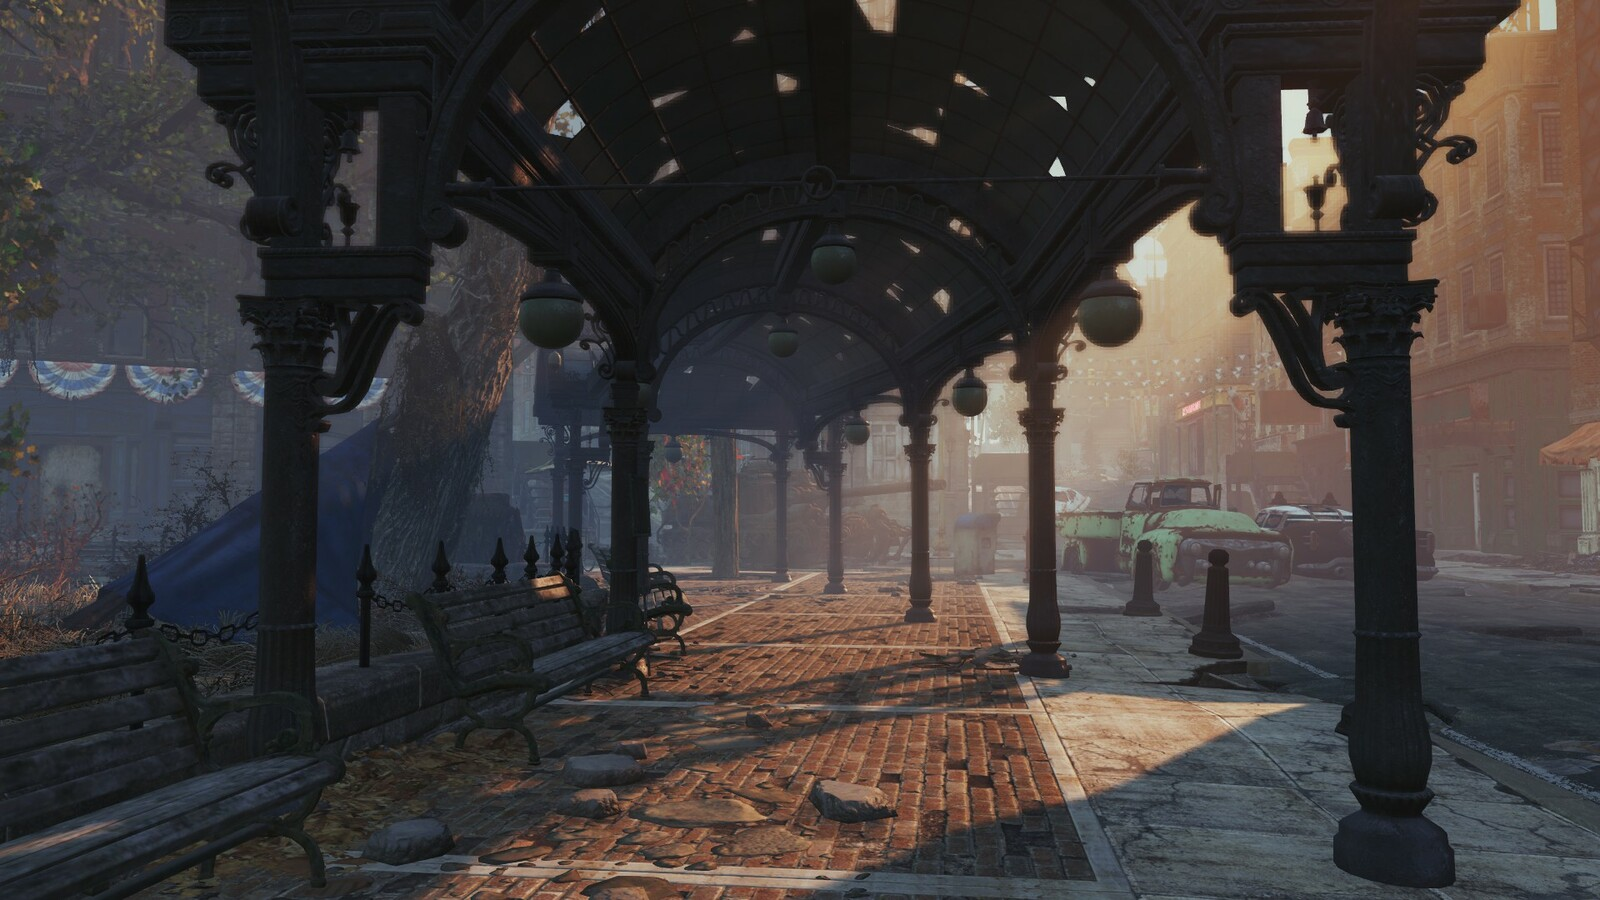 All renders are in game screenshoots. Fallout 4 use Creation Engine.